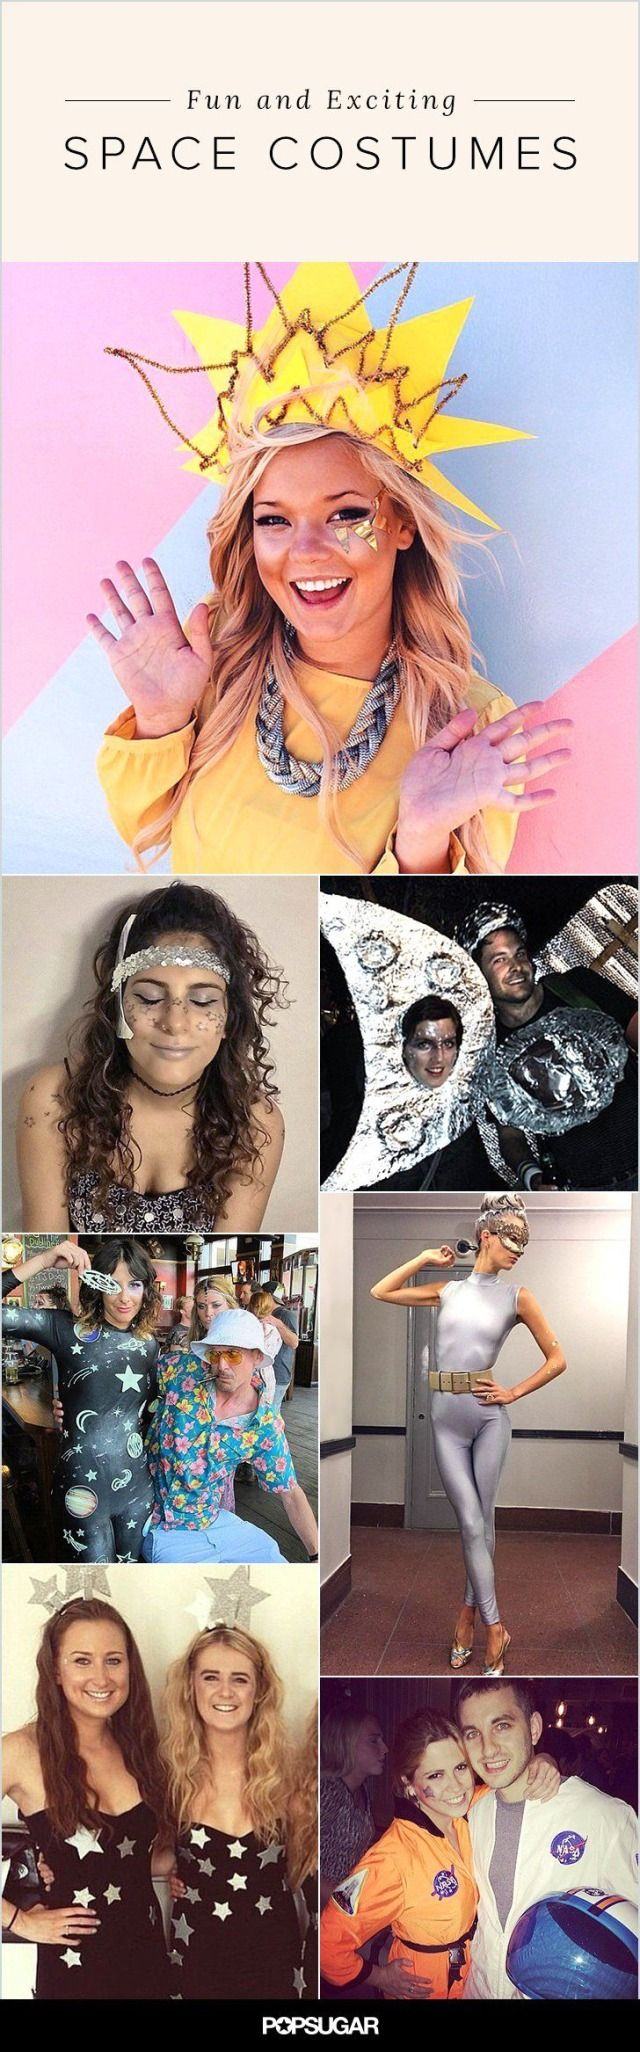 19 Solar System Costumes That Are Out of This World                                                                                                                                                                                 More